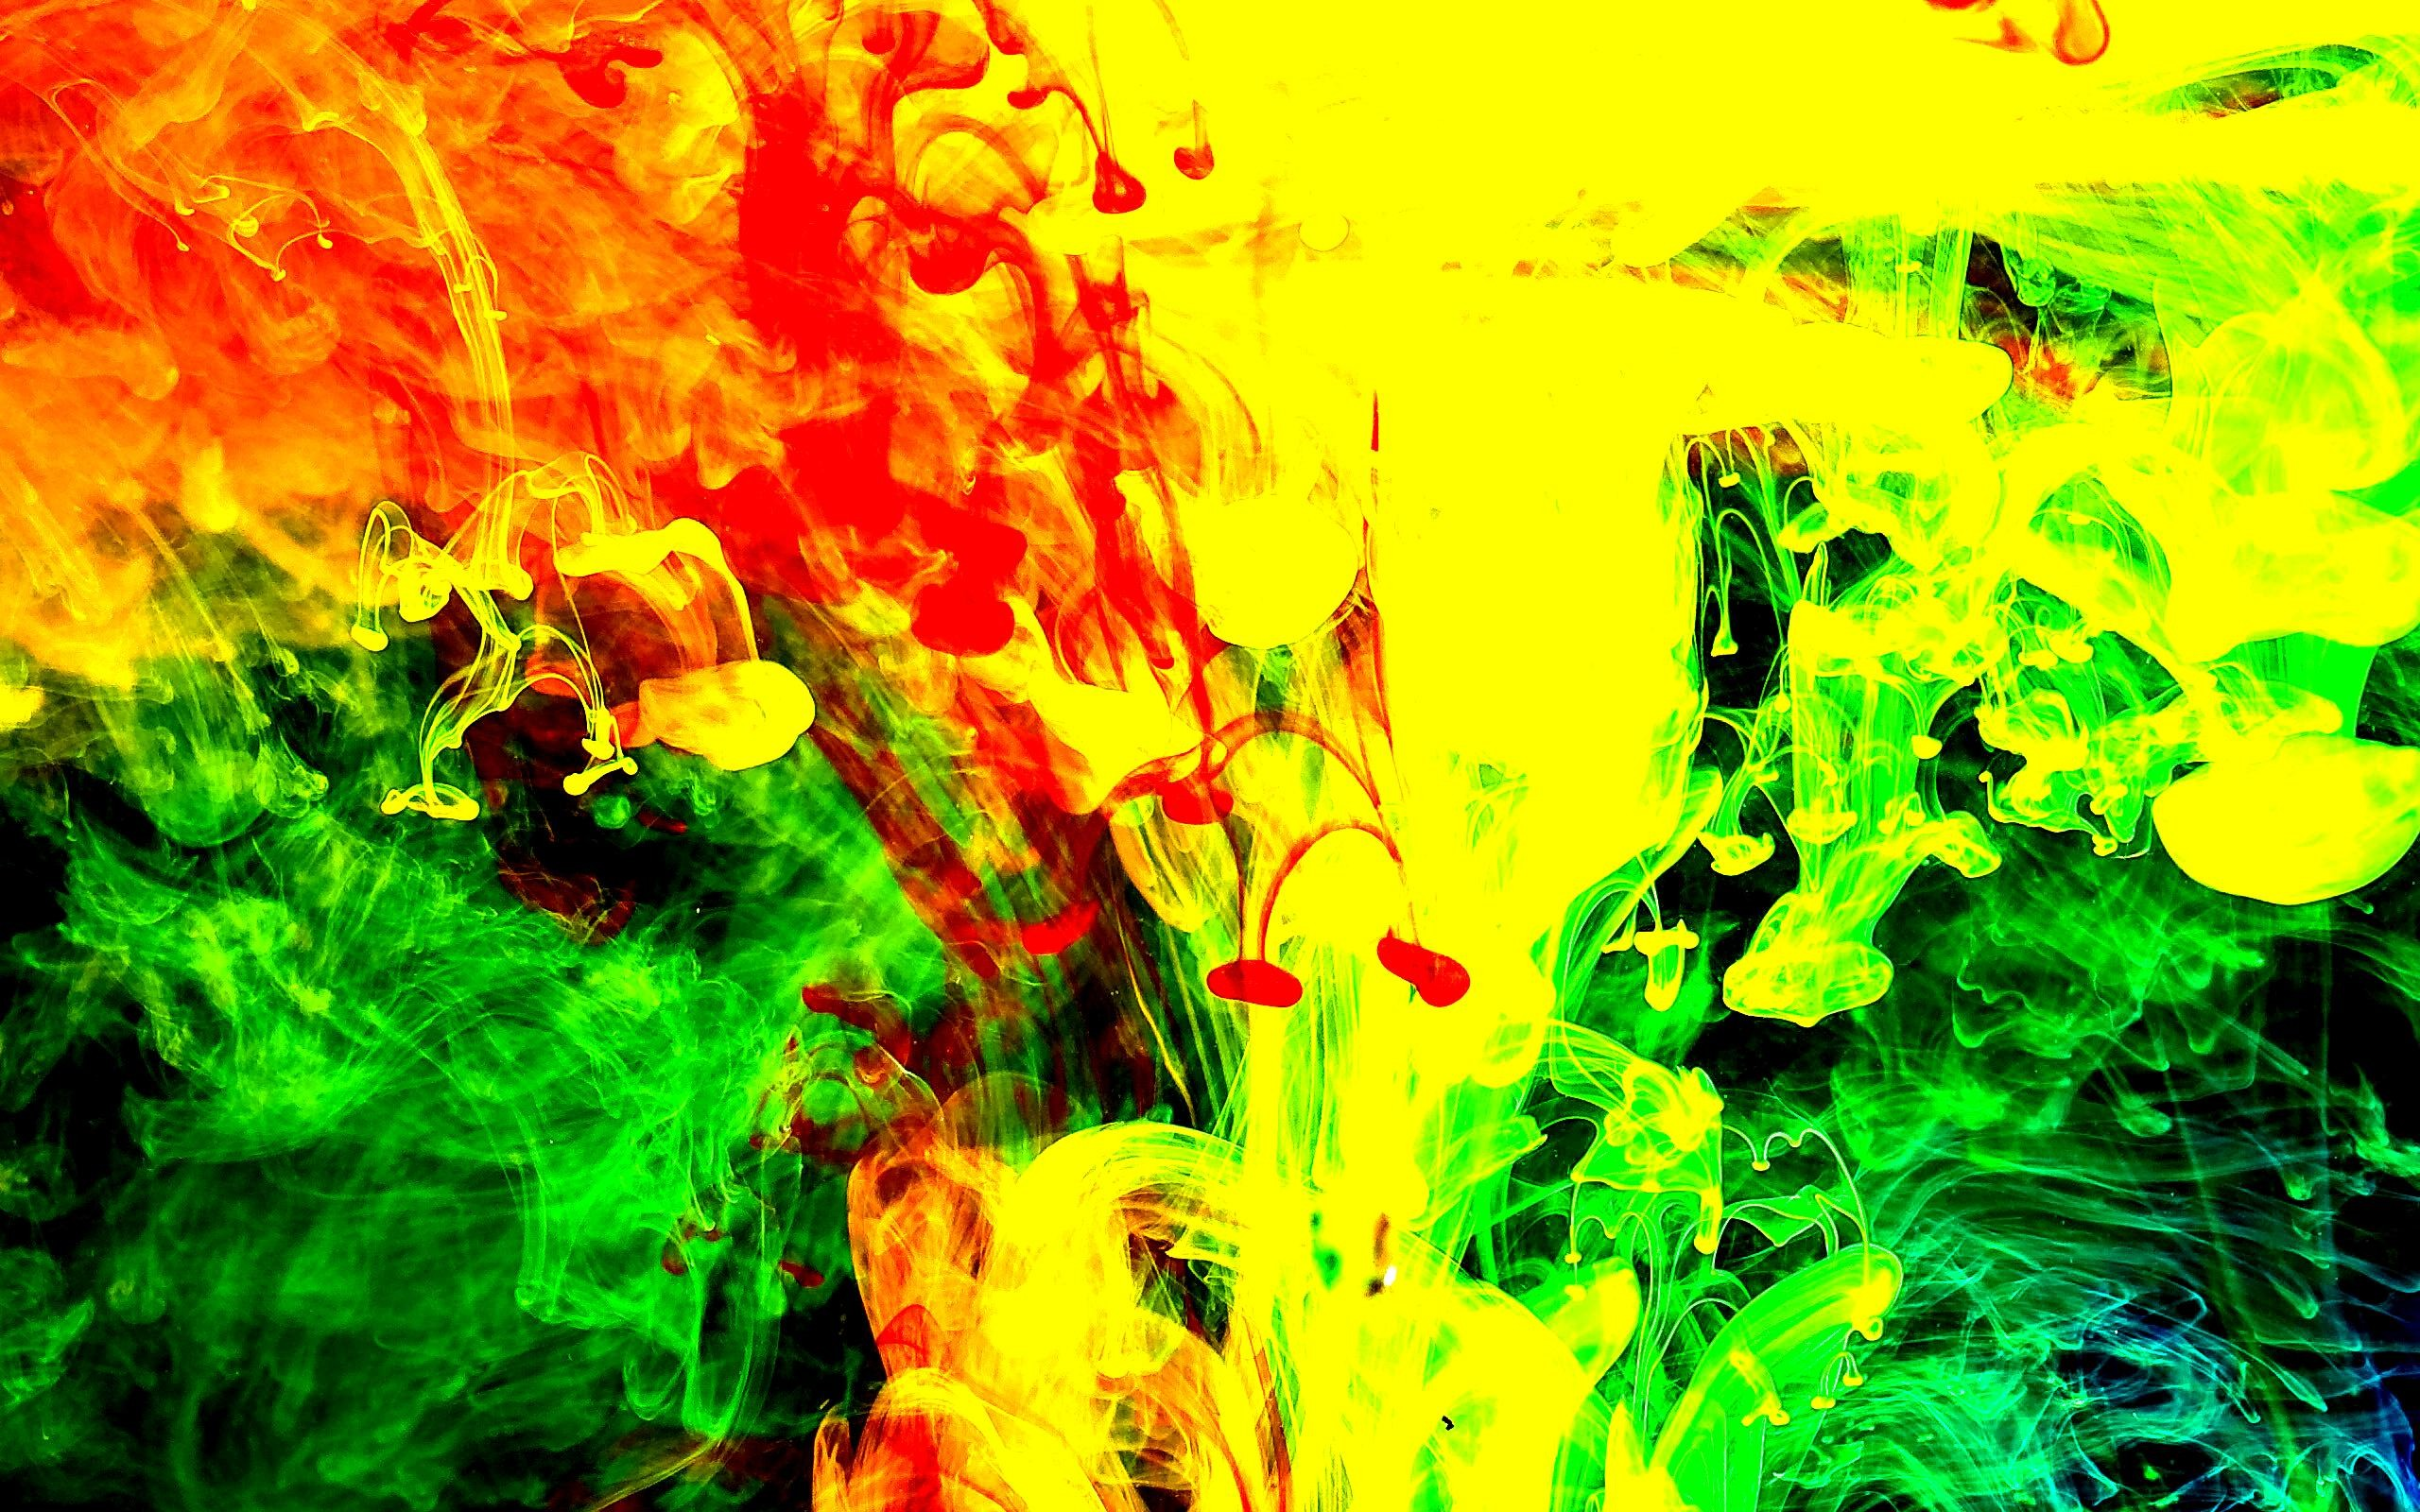 2560x1600 smoke_color_paint_abstract_high_contrast_hd-wallpaper-159738